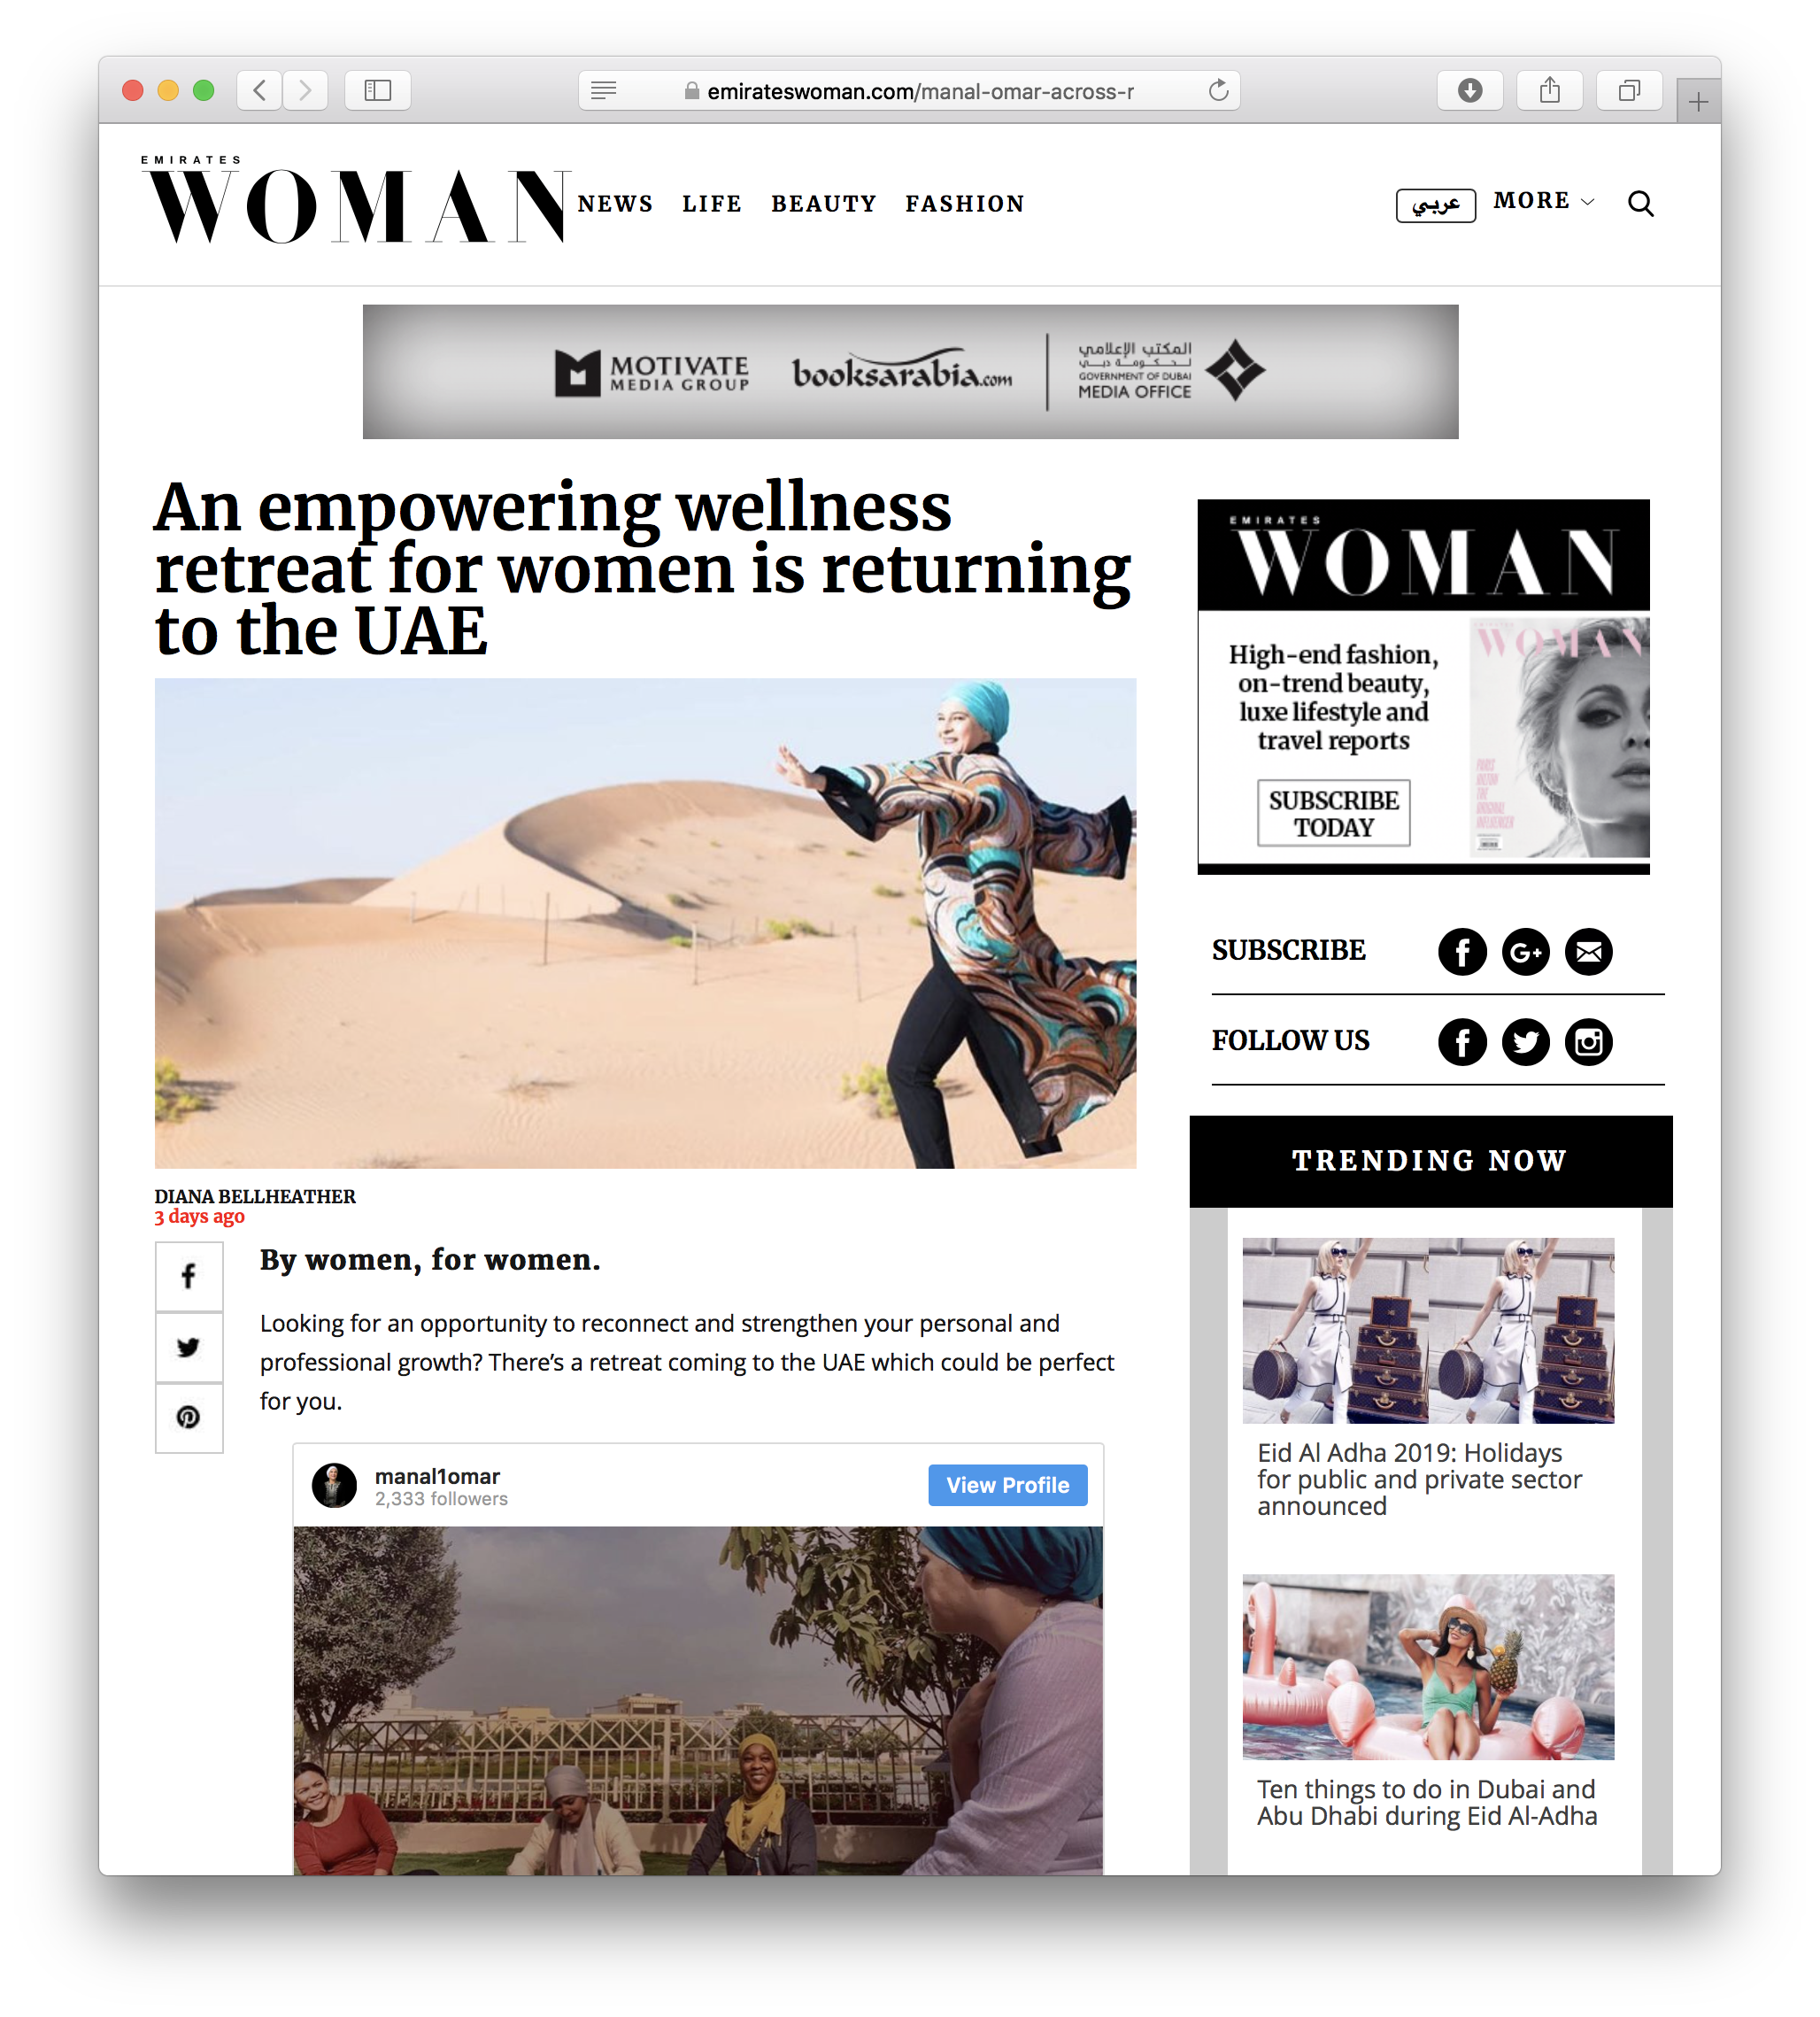 emirates-woman-across-red-lines-retreats.png